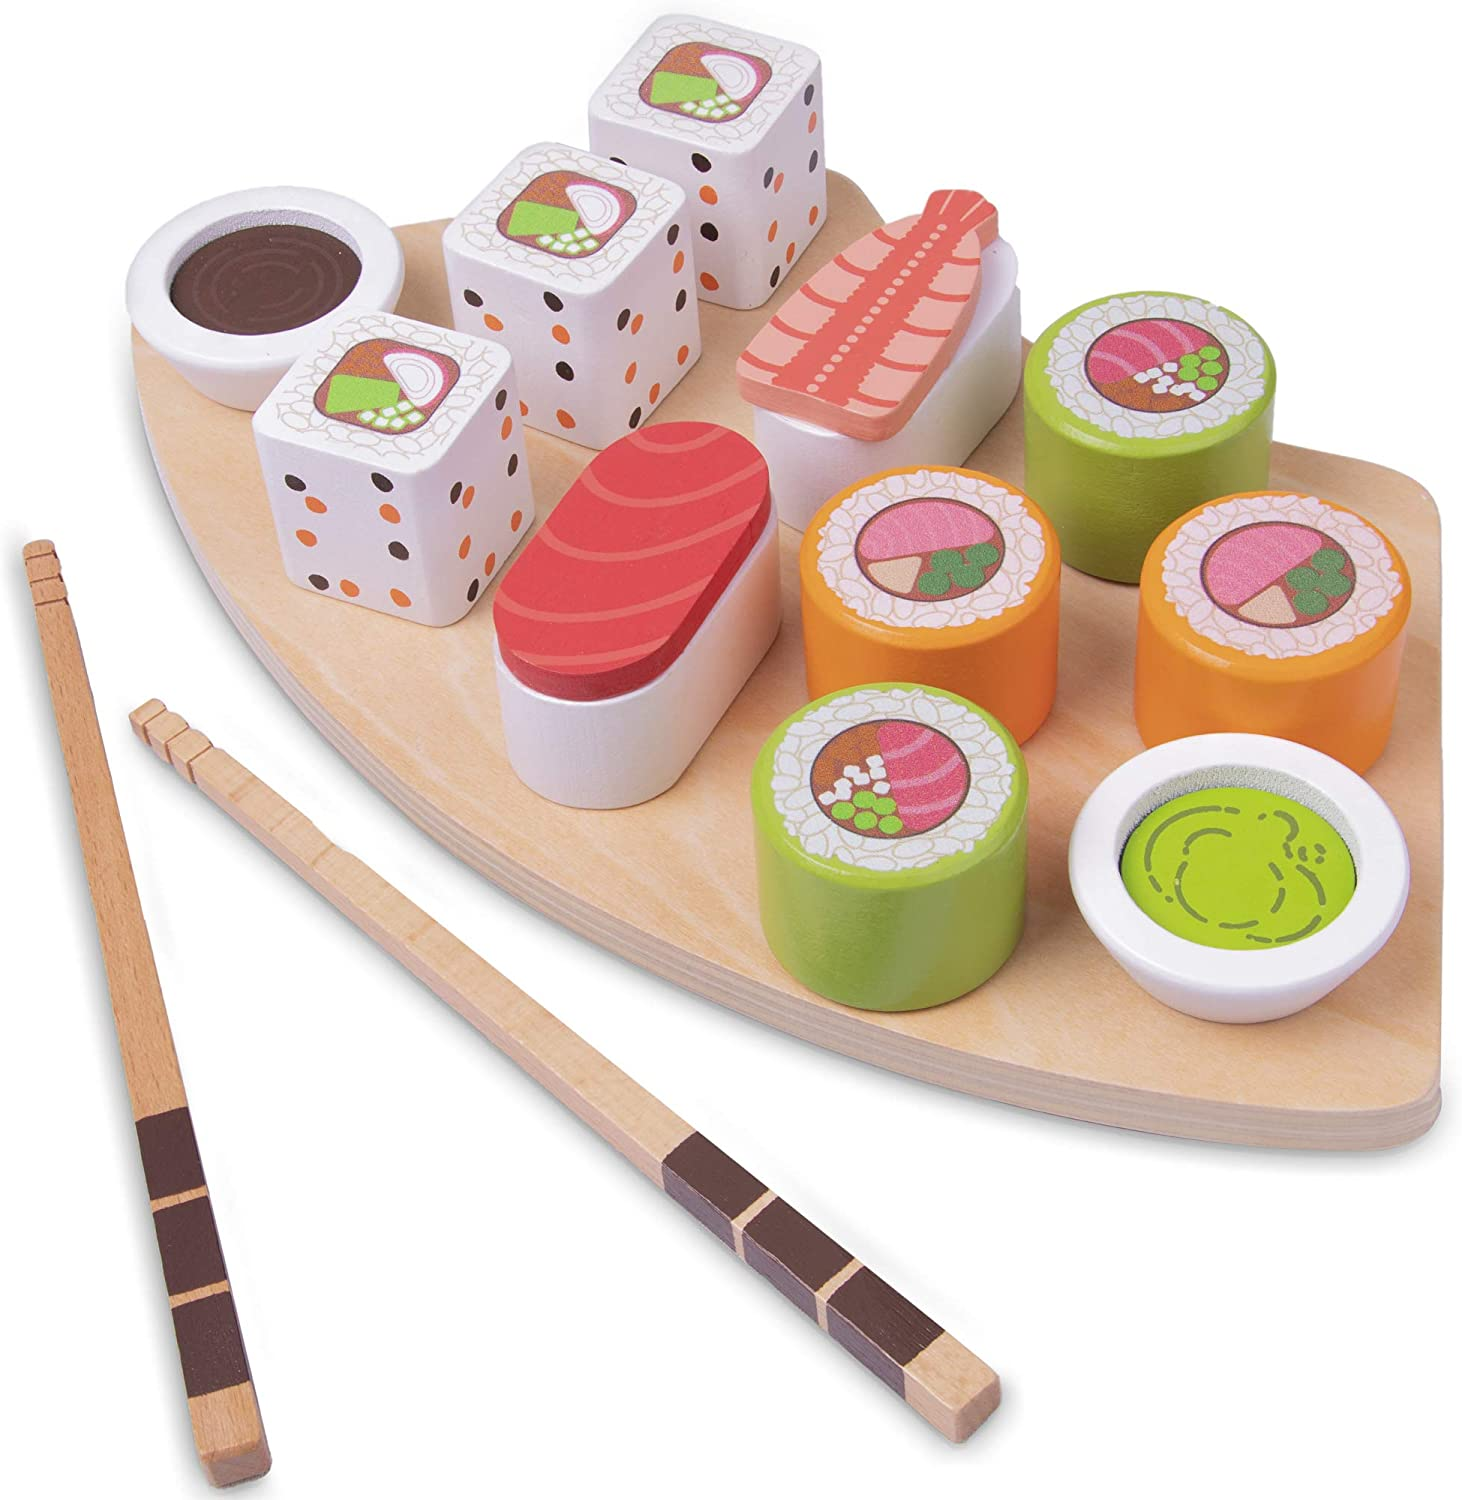 Imagination Generation I Love Sushi | 14-Piece Wooden Sushi Serving Tray Playset Includes Rolls, Sashimi, Chopsticks, and Wasabi | Play Food for Pretend Kitchens